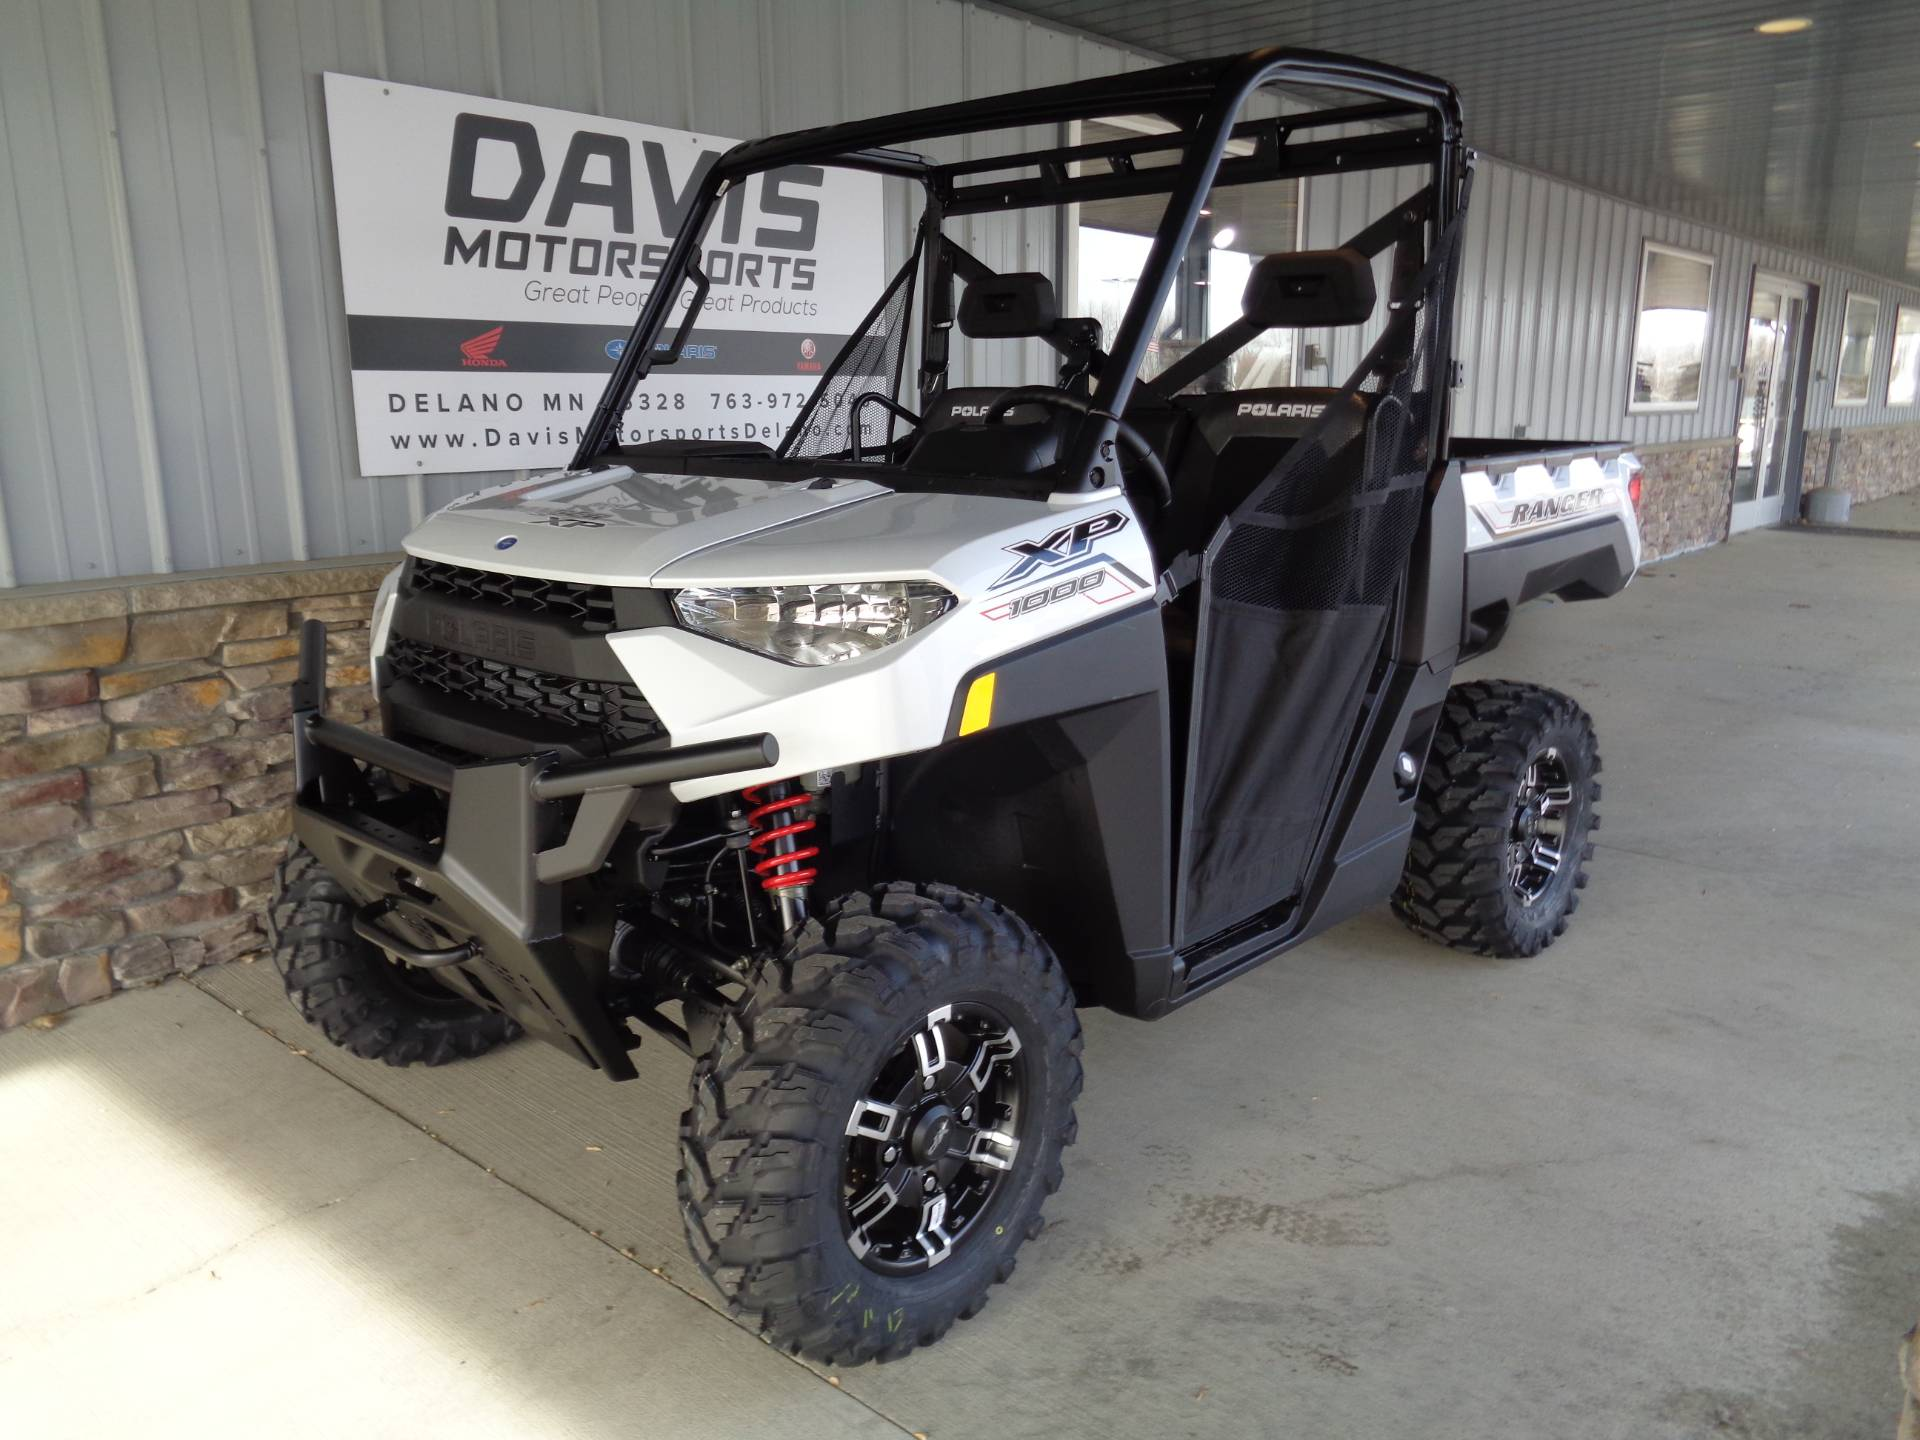 2021 Polaris Ranger XP 1000 Premium in Delano, Minnesota - Photo 4